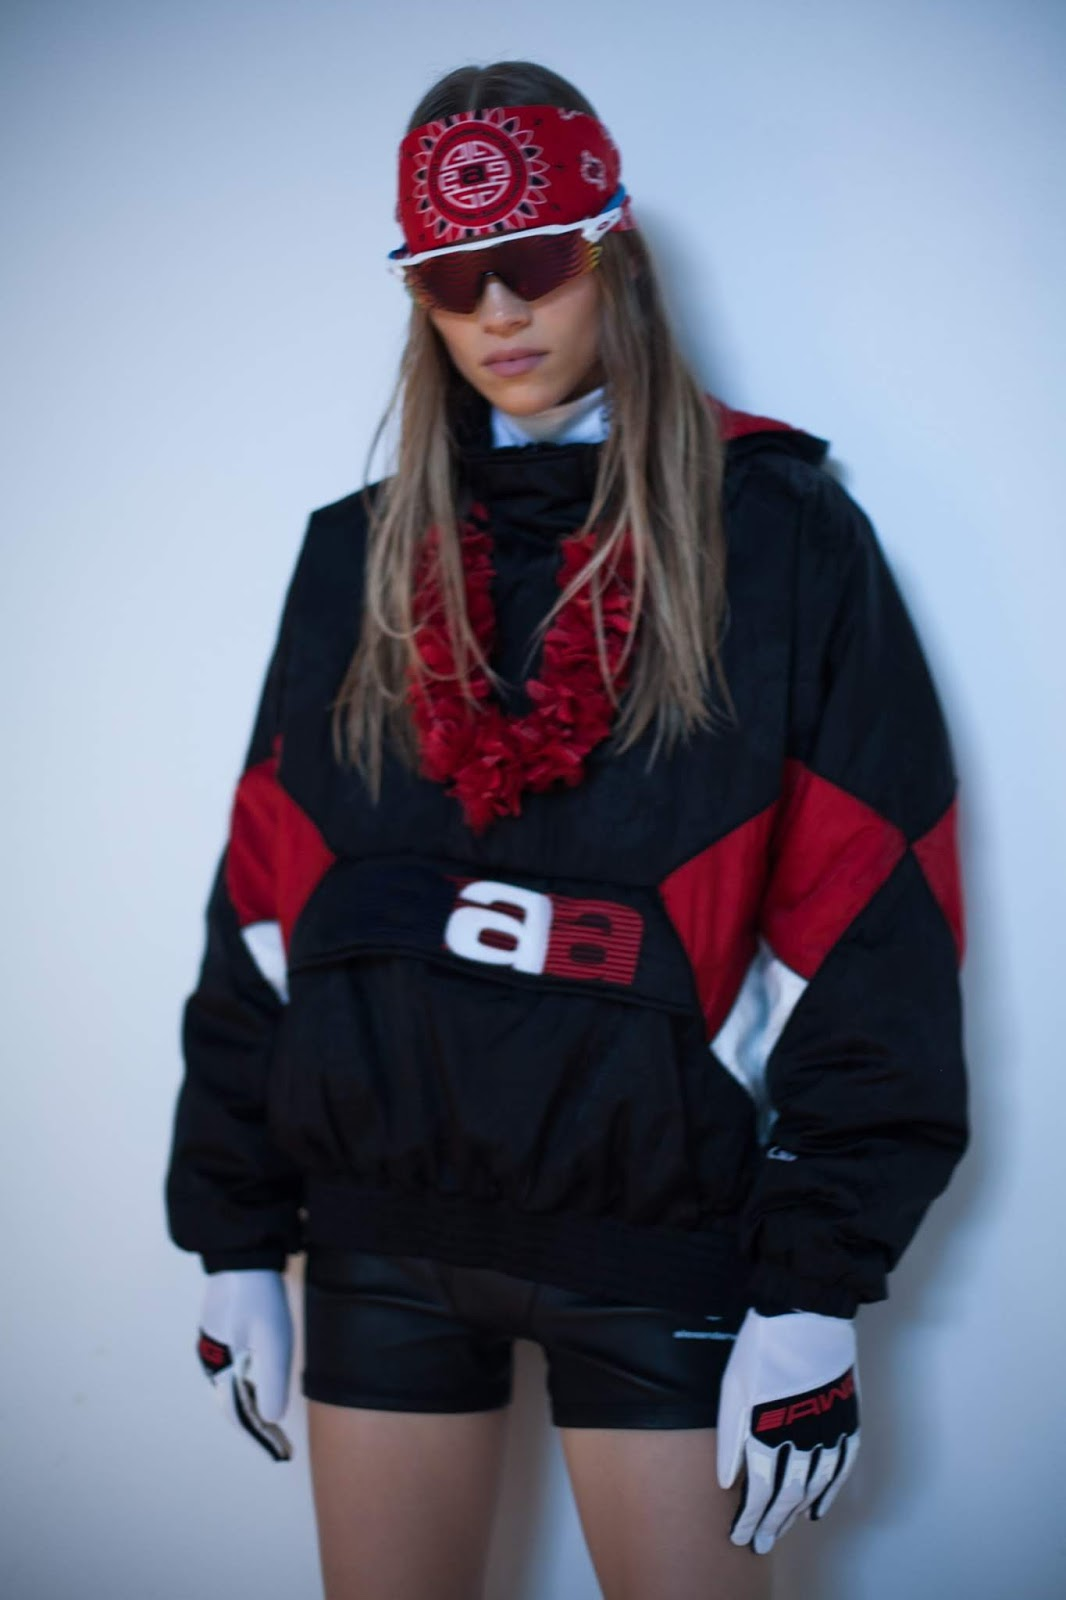 ALEXANDER WANG INSPIRED IN AXL ROSE CHINESE DEMOCRACY